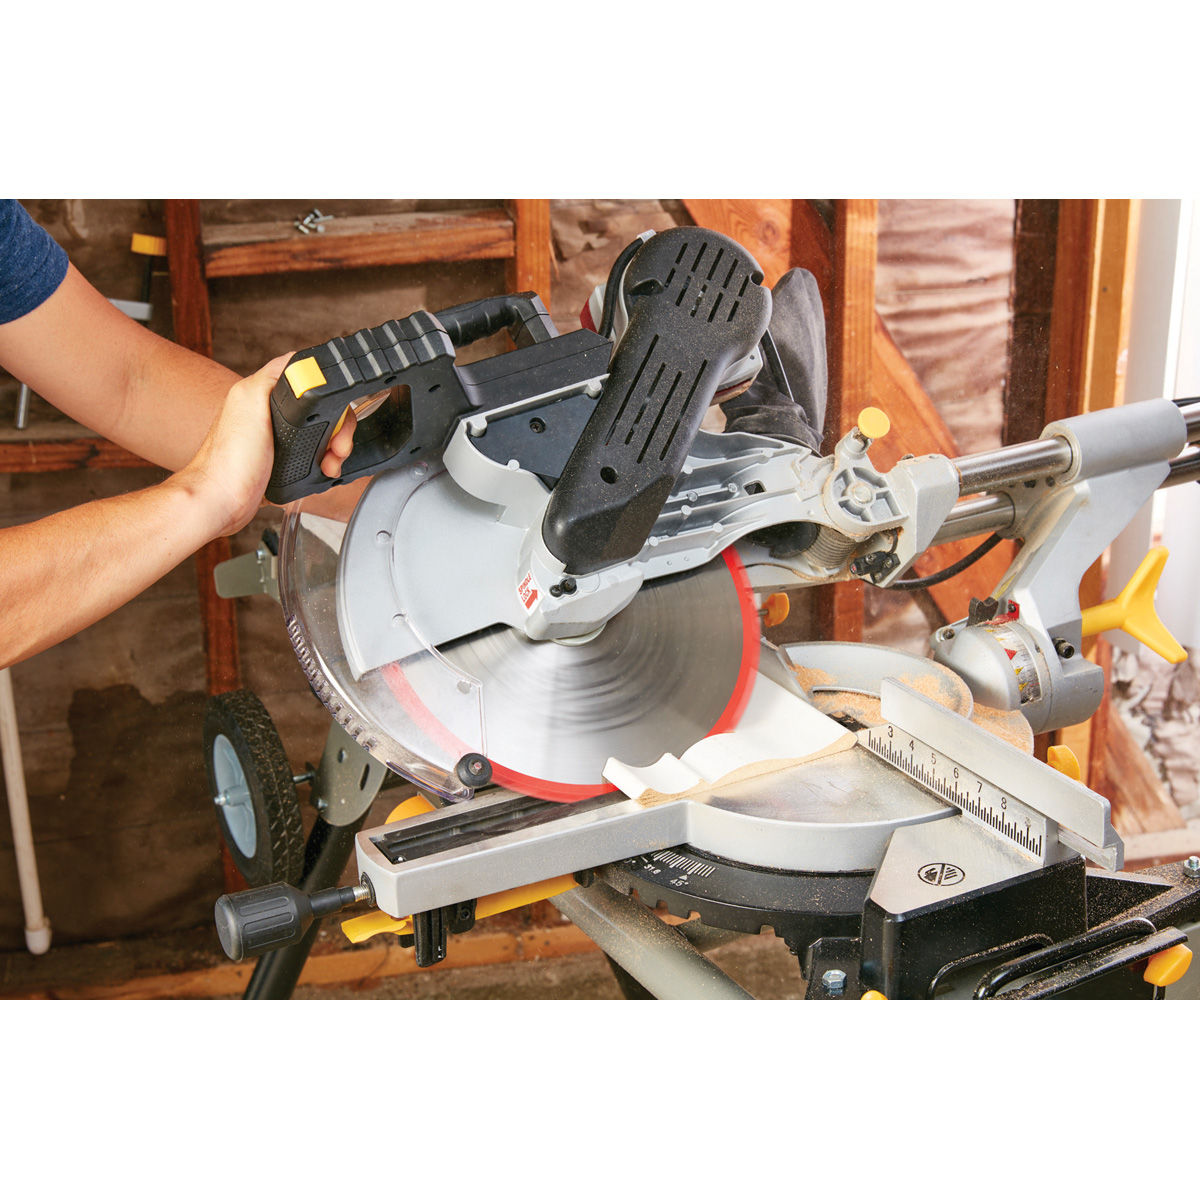 12 in double bevel sliding compound miter saw with laser guide system double bevel sliding compound miter saw with laser guide system keyboard keysfo Choice Image